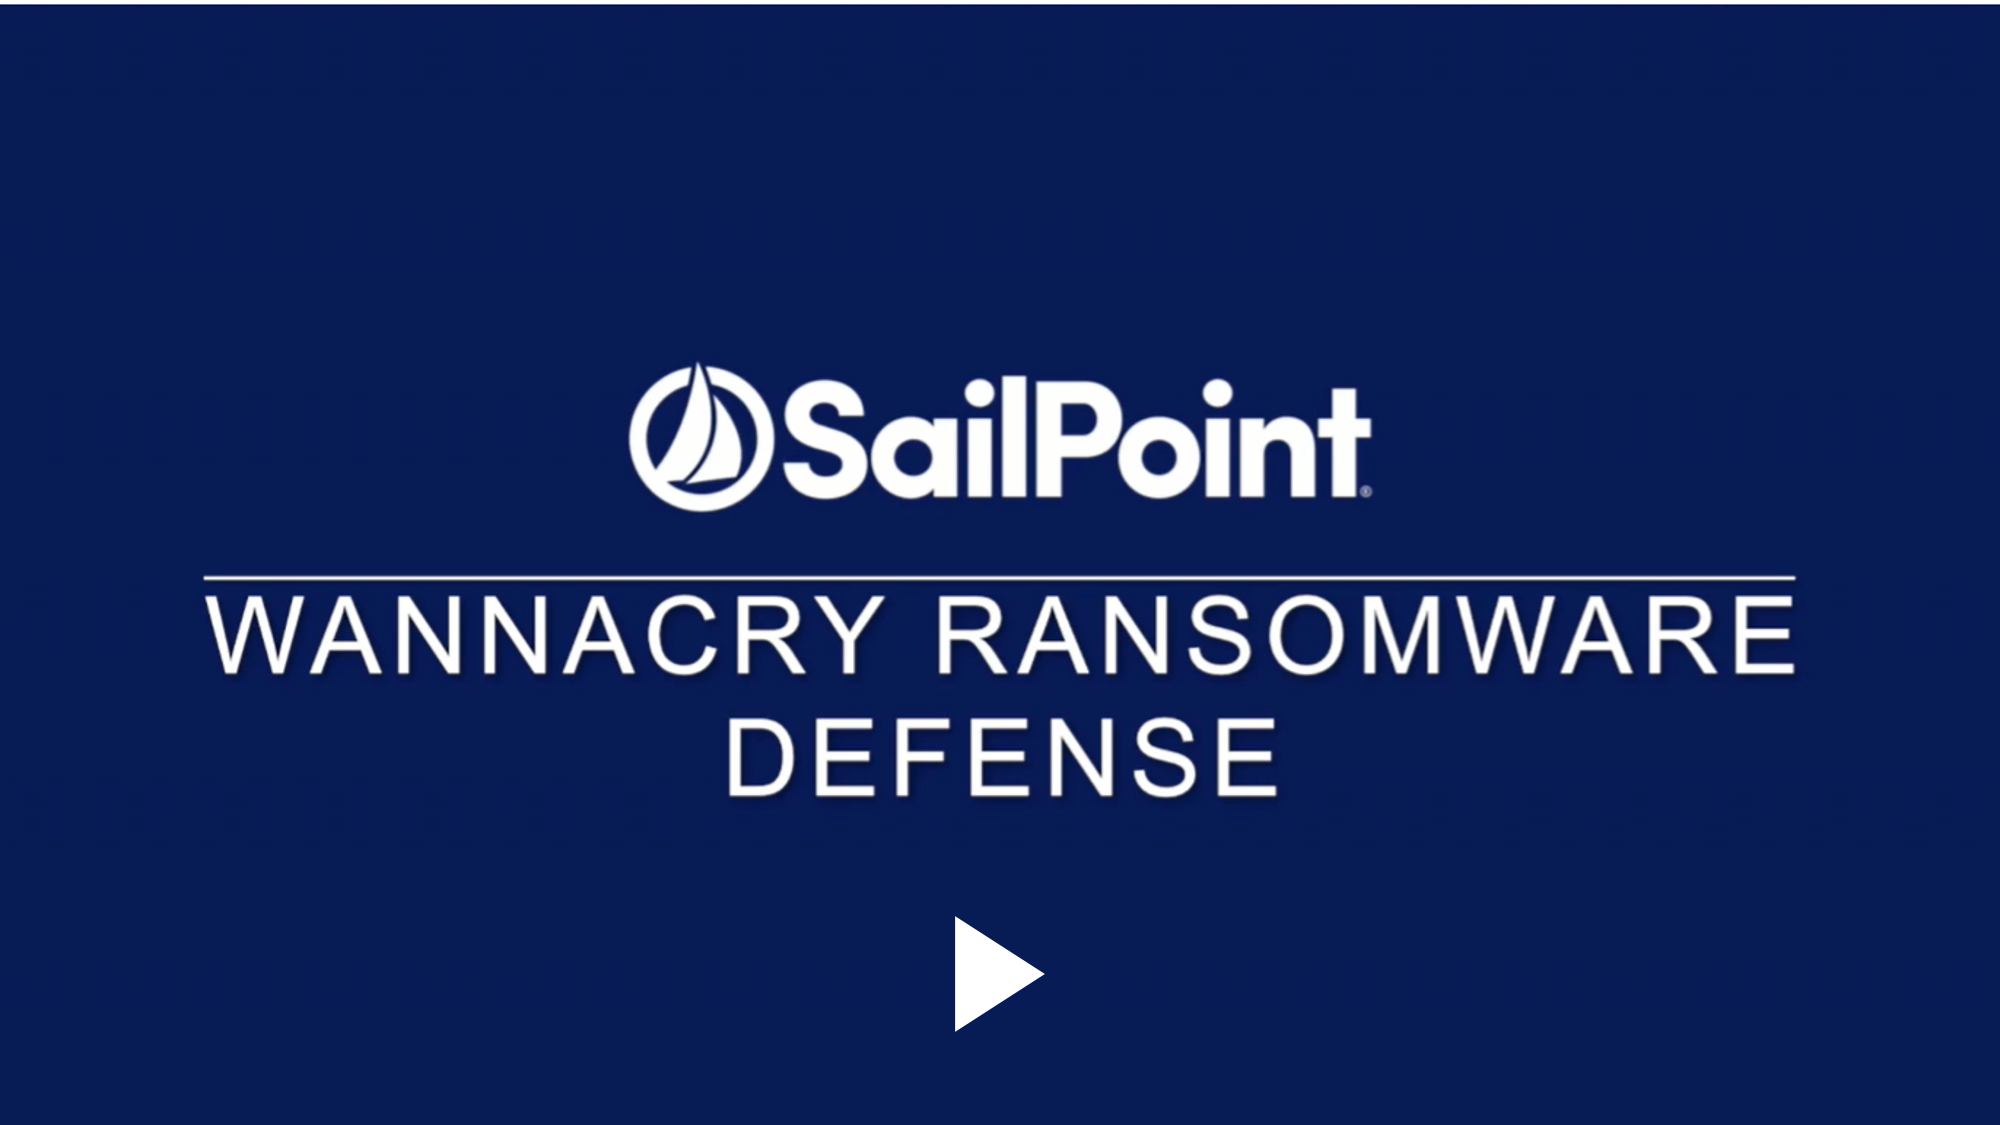 SailPoint malware defense